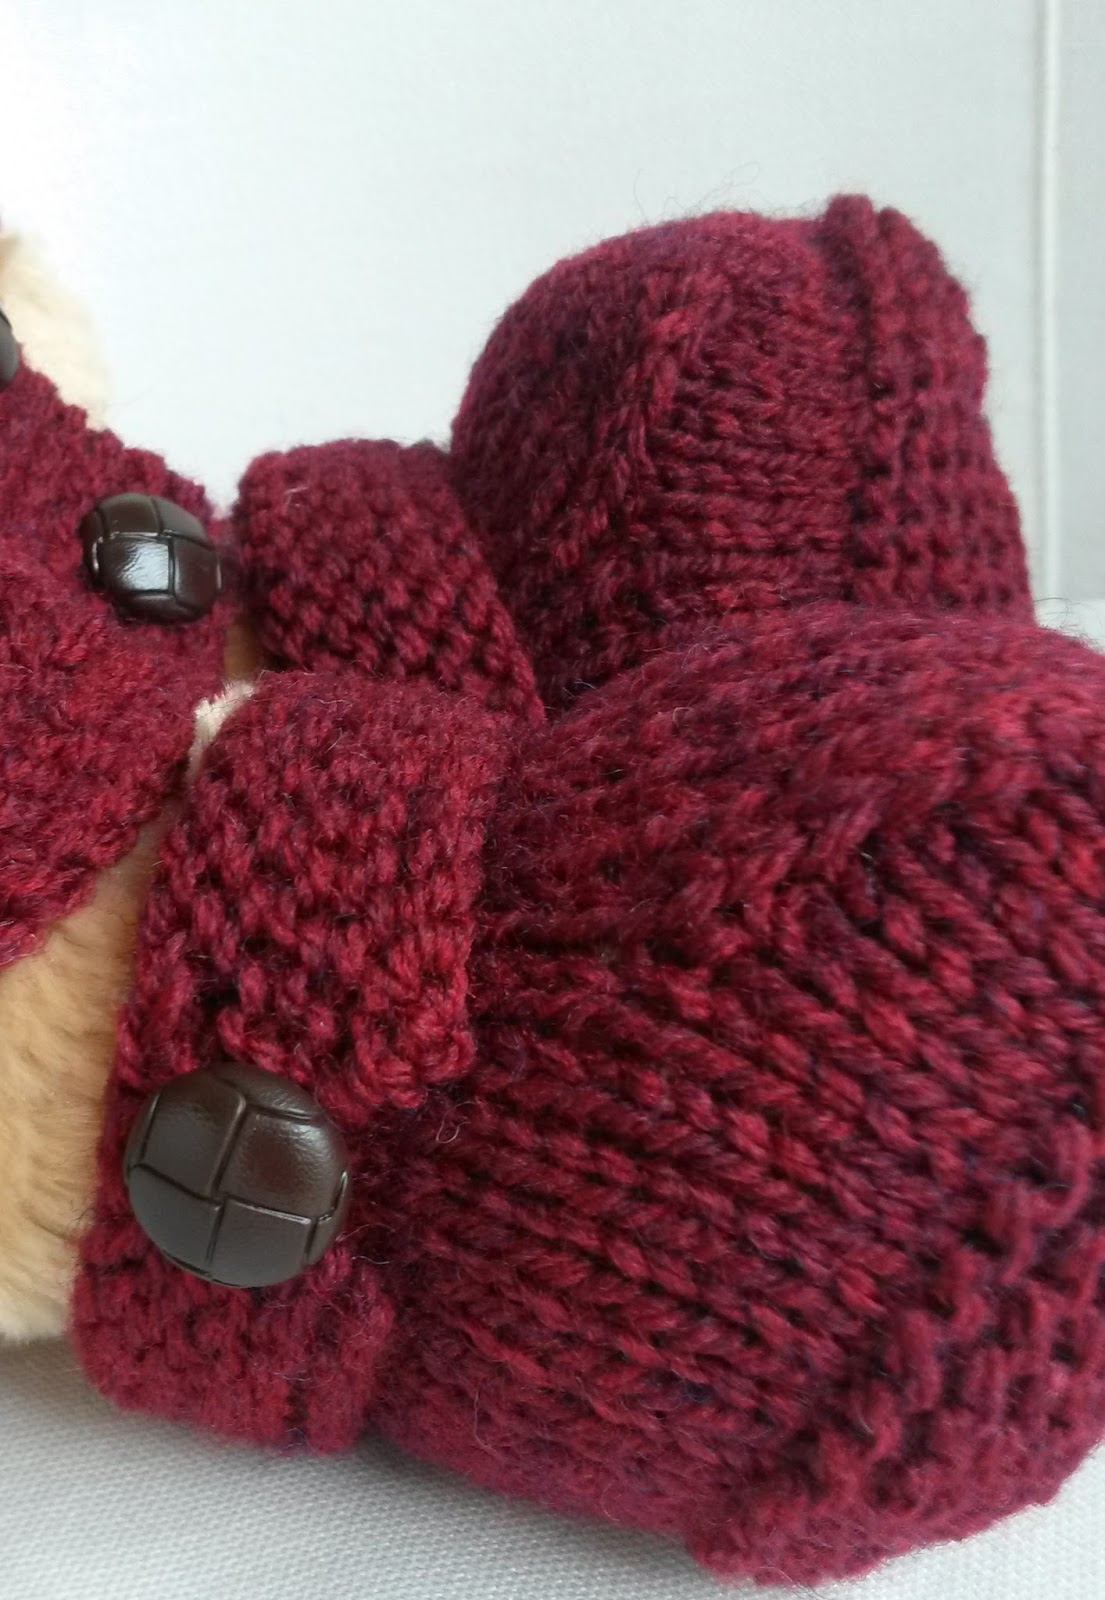 Linmary Knits: Teddy Aran Jacket and Ugg boots